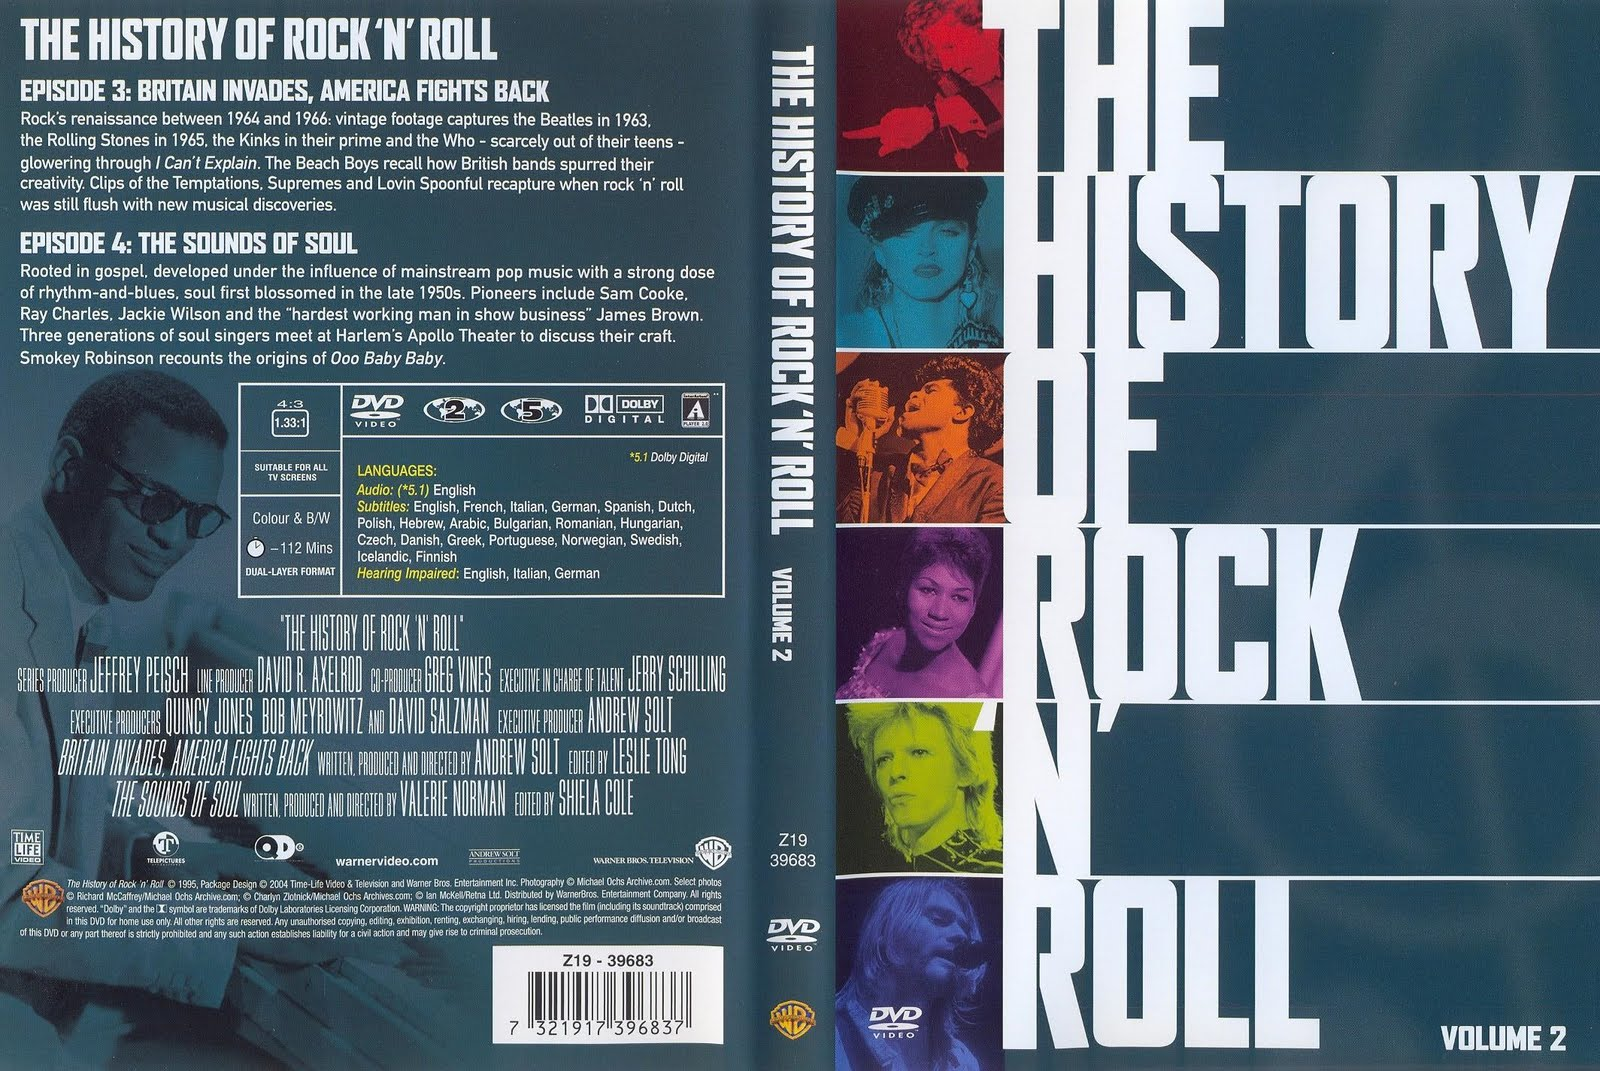 the history of rock and roll in the united states Today almost 50 years on it remains an important part of rock 'n' rolls history on sunset strip 8901 sunset boulevard, west hollywood, california, +1 310 652 4202 8.